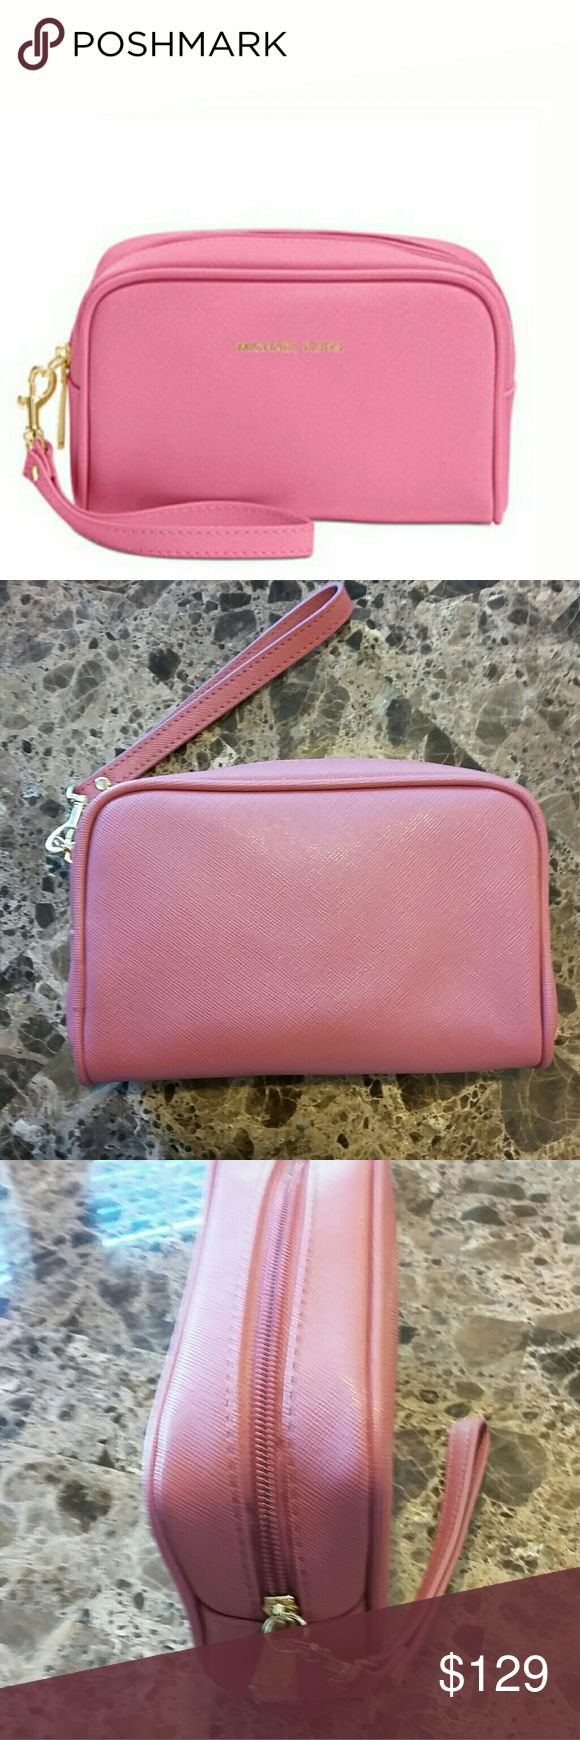 """🆕Michael Kors Saffiano Signature Travel Wristlet This brand new authentic streamlined wristlet keeps essential cards, cash, and ID within easy reach. Interior slip pocket. Zip closure. Lined. Detachable strap. Material: leather. Approximate measurements: 5""""h x 7.5""""l x 2.5""""w. No hang tag, shipped in upc-coded original packaging. Michael Kors Bags Clutches & Wristlets"""